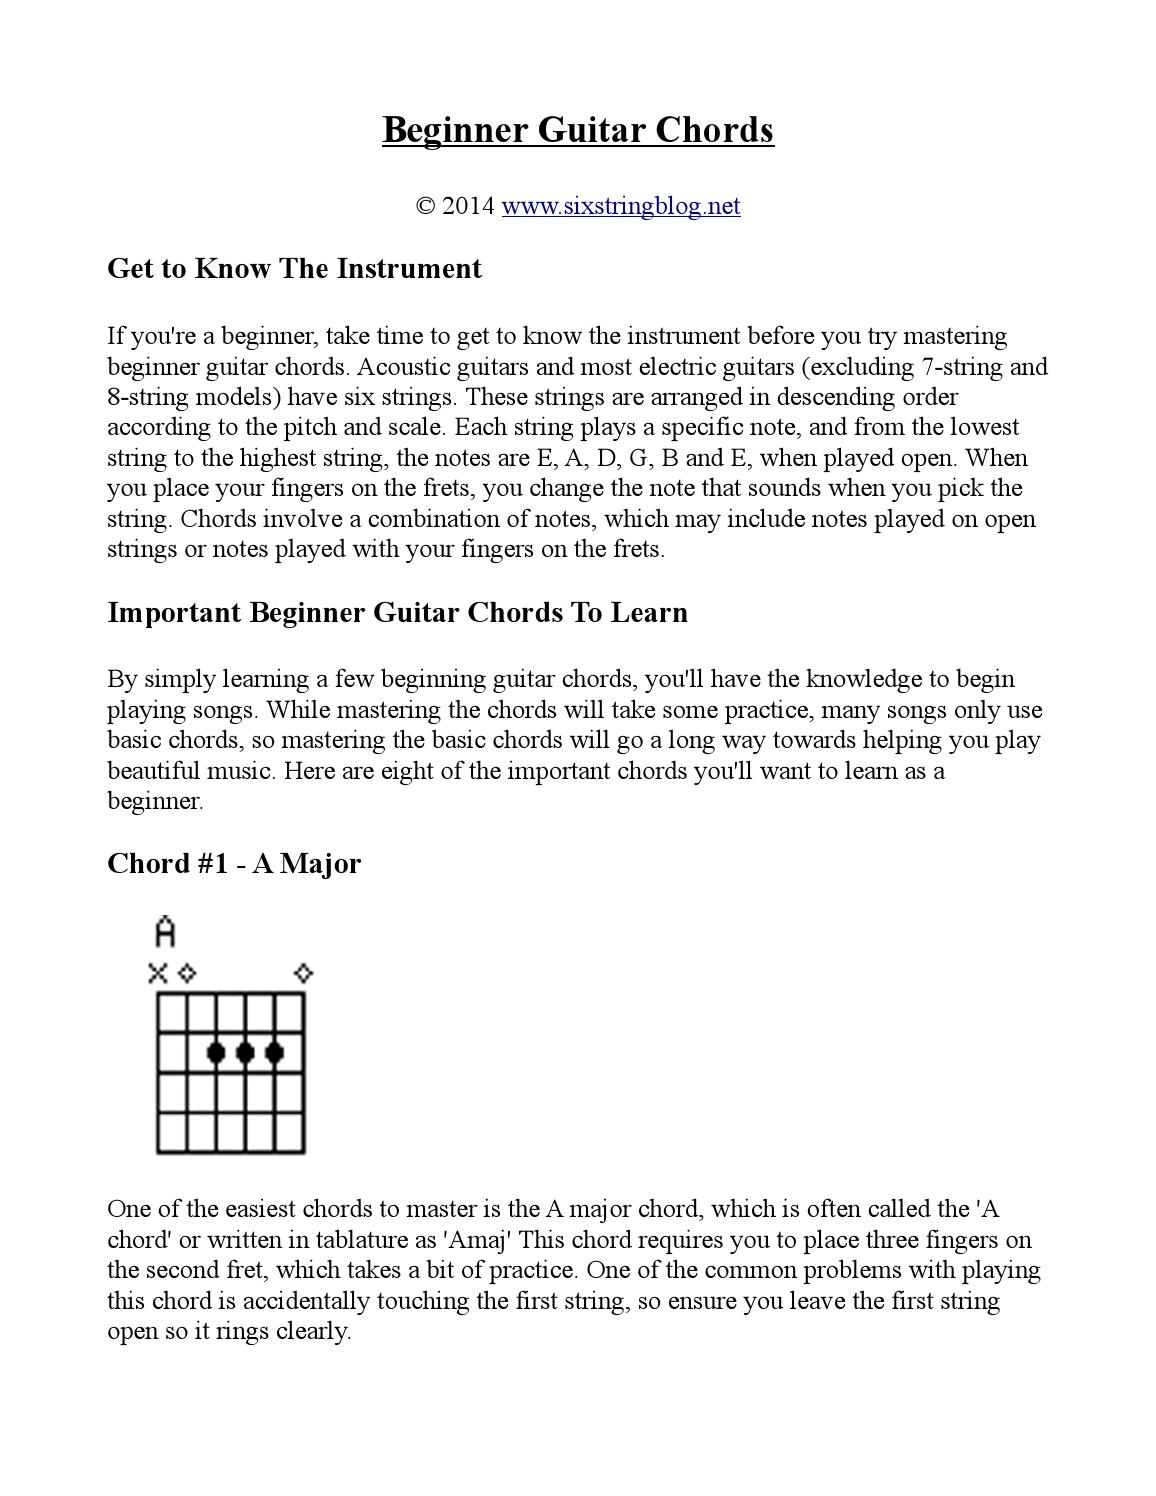 Beginner Guitar Chords By Chris Macrae Issuu